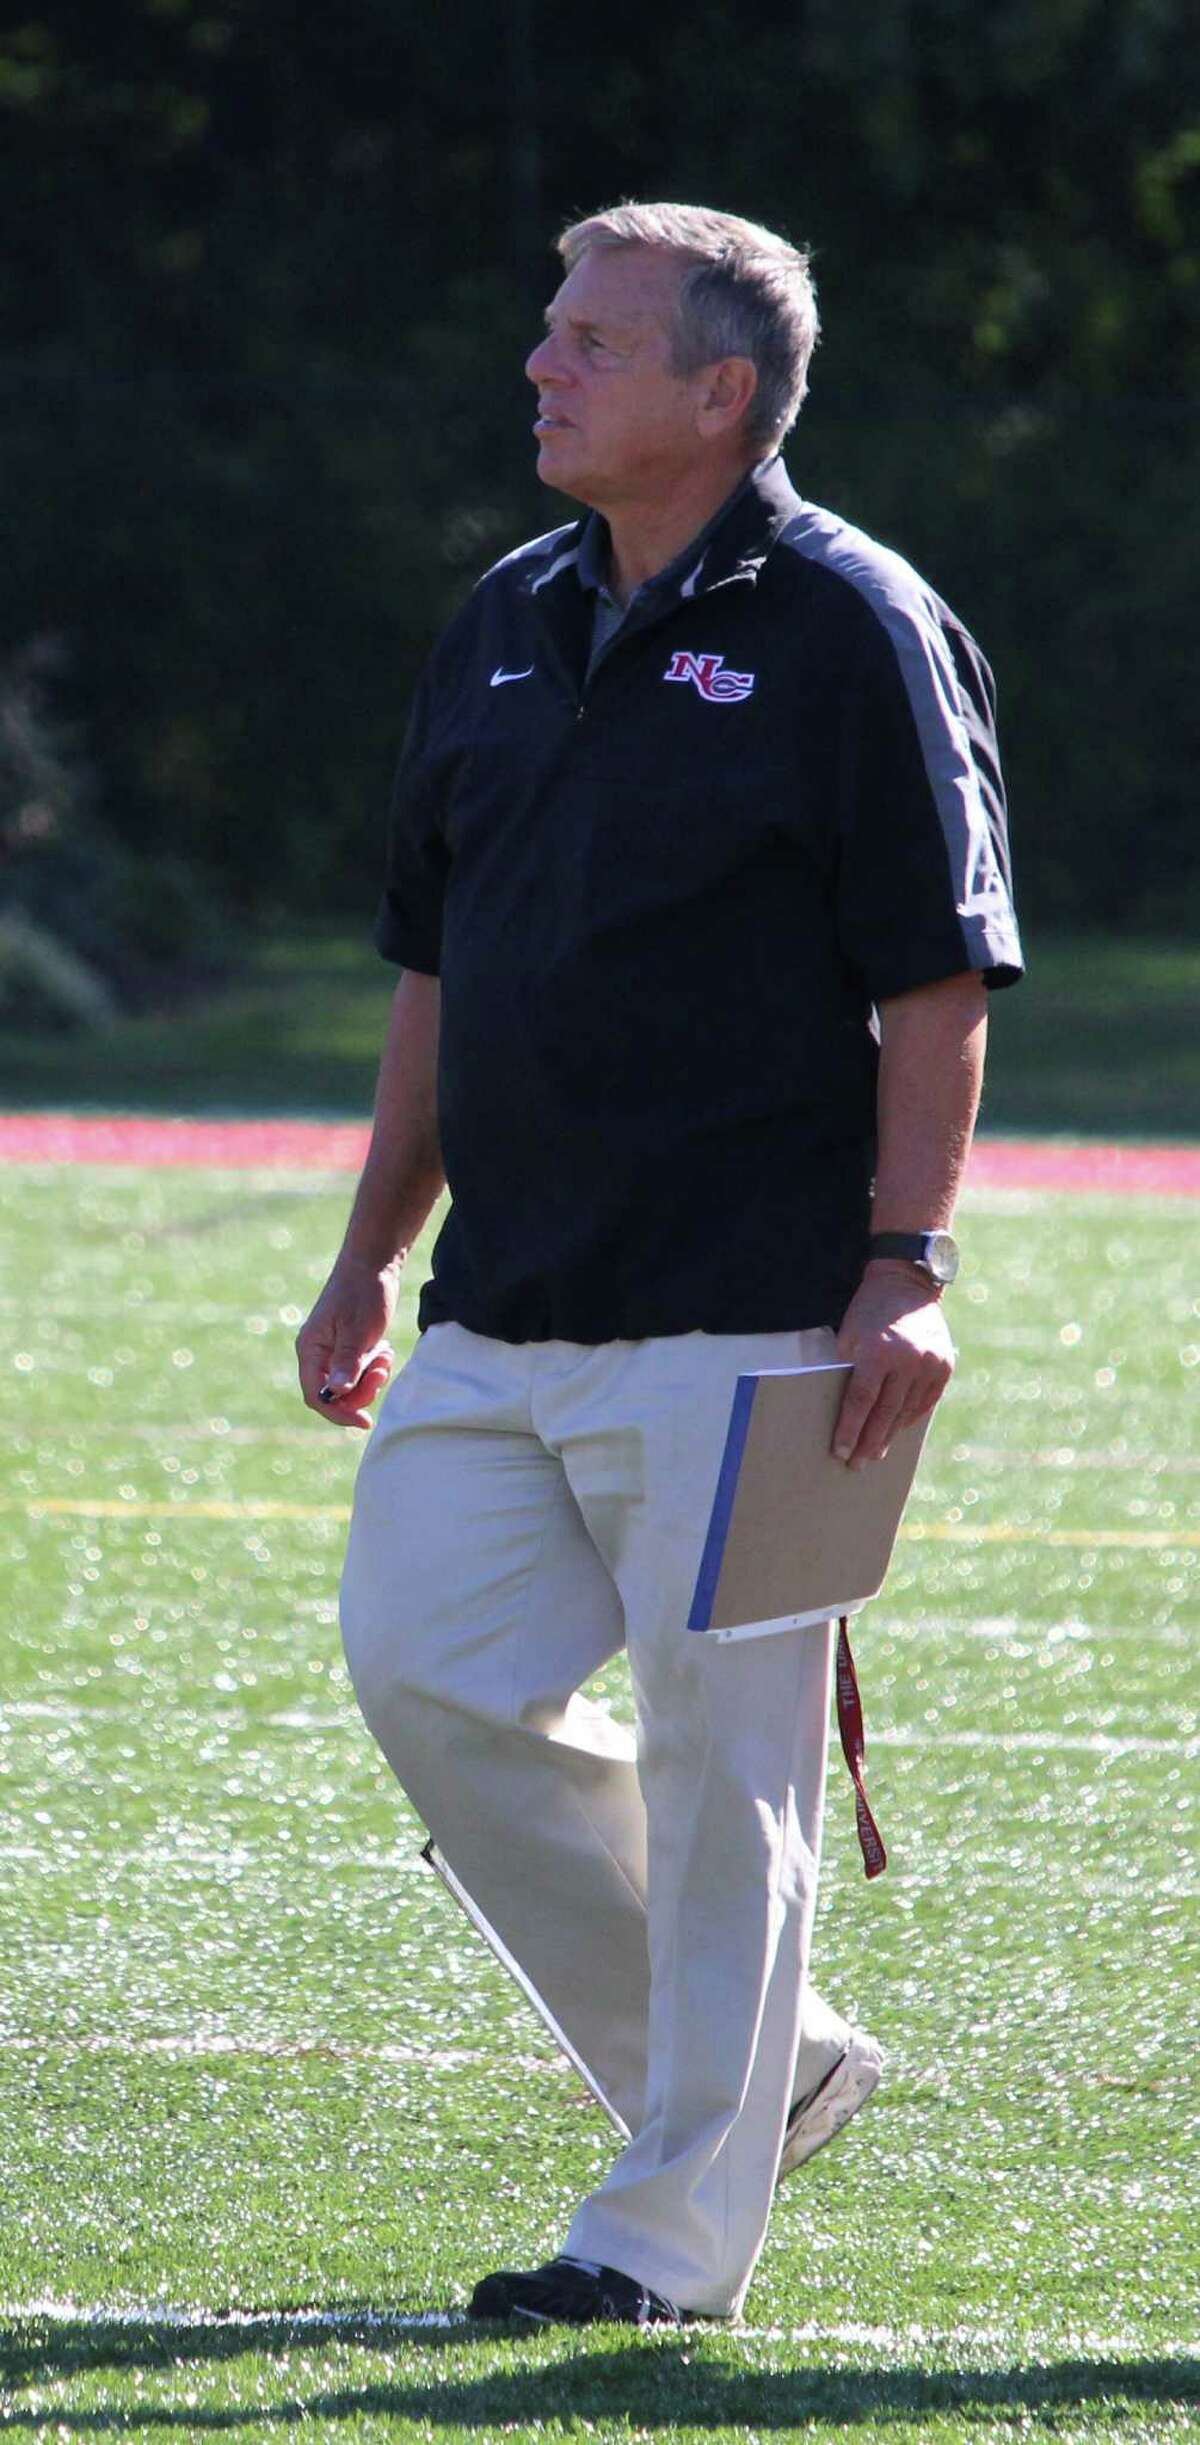 New Canaan coach Lou Marinelli stalks the sidelines during New Canaan's matchup with Danbury. The Rams defeated Danbury 37-14 Saturday, Oct. 15, 2016 at New Canaan High School in New Canaan, CT.